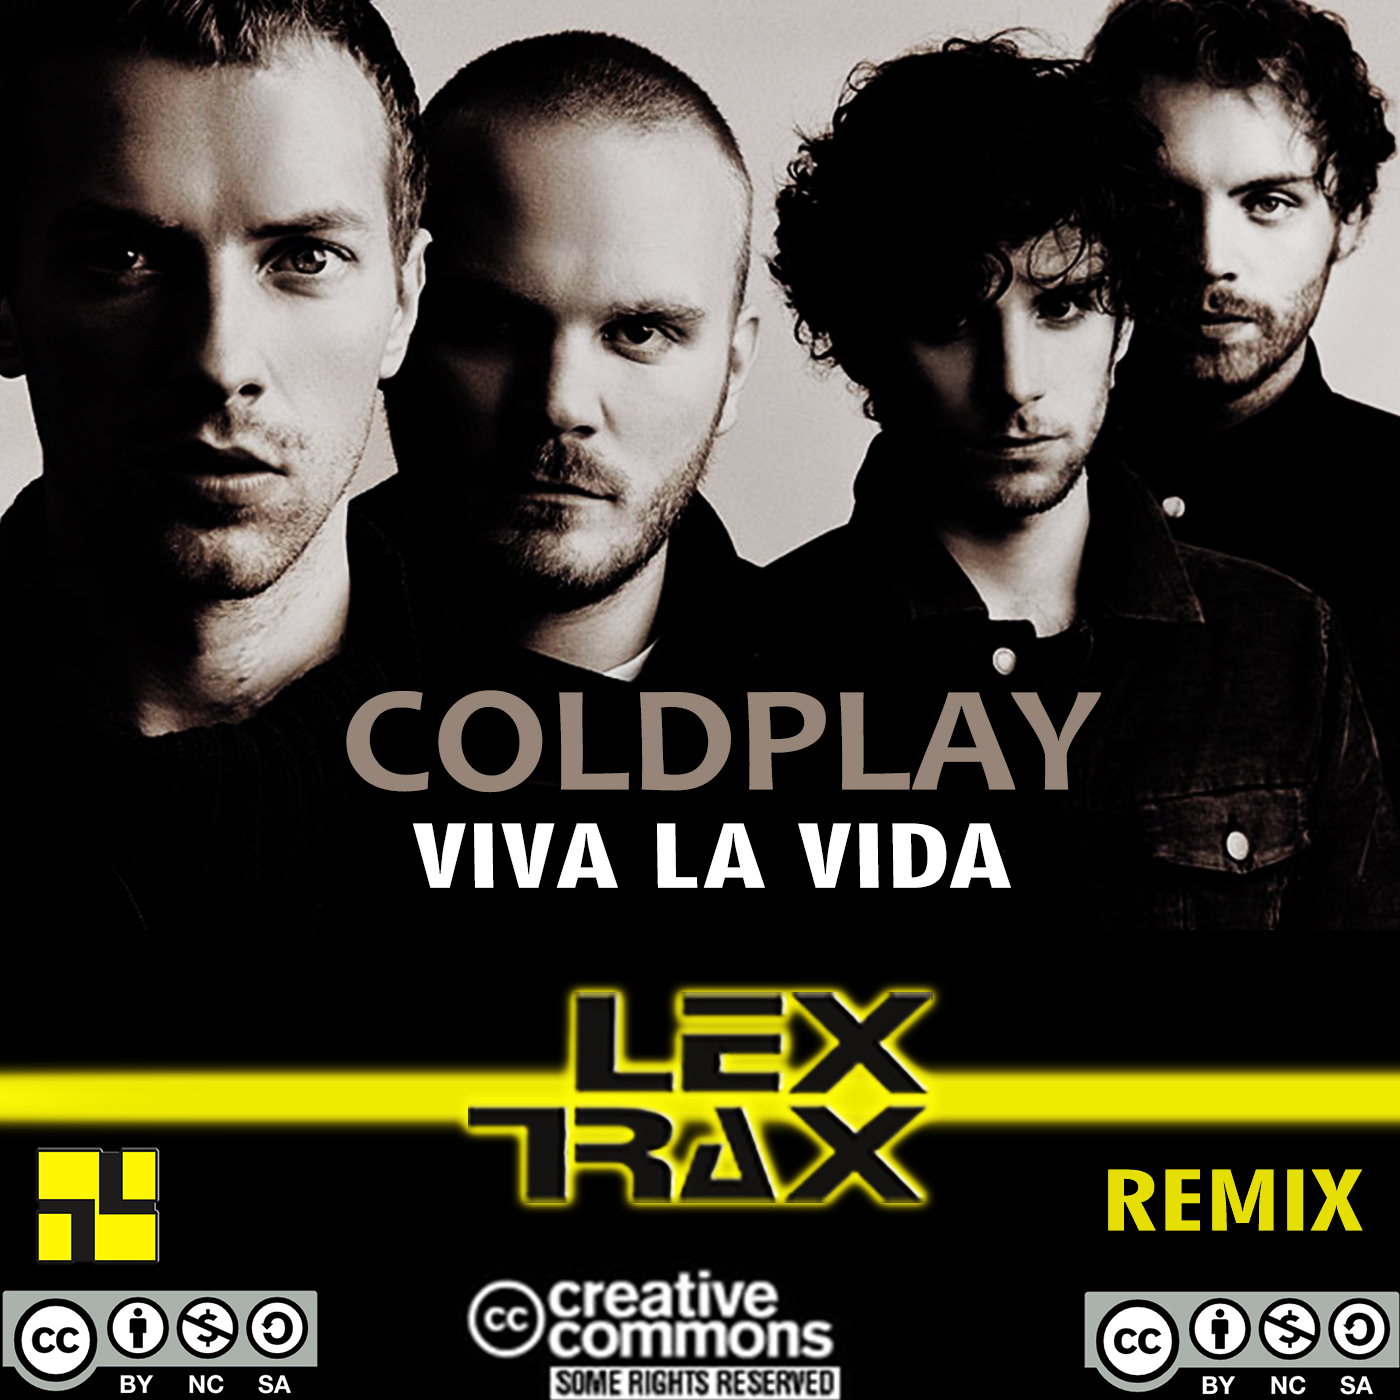 Coldplay - Viva La Vida (Lex Trax Remix) by Lex Trax